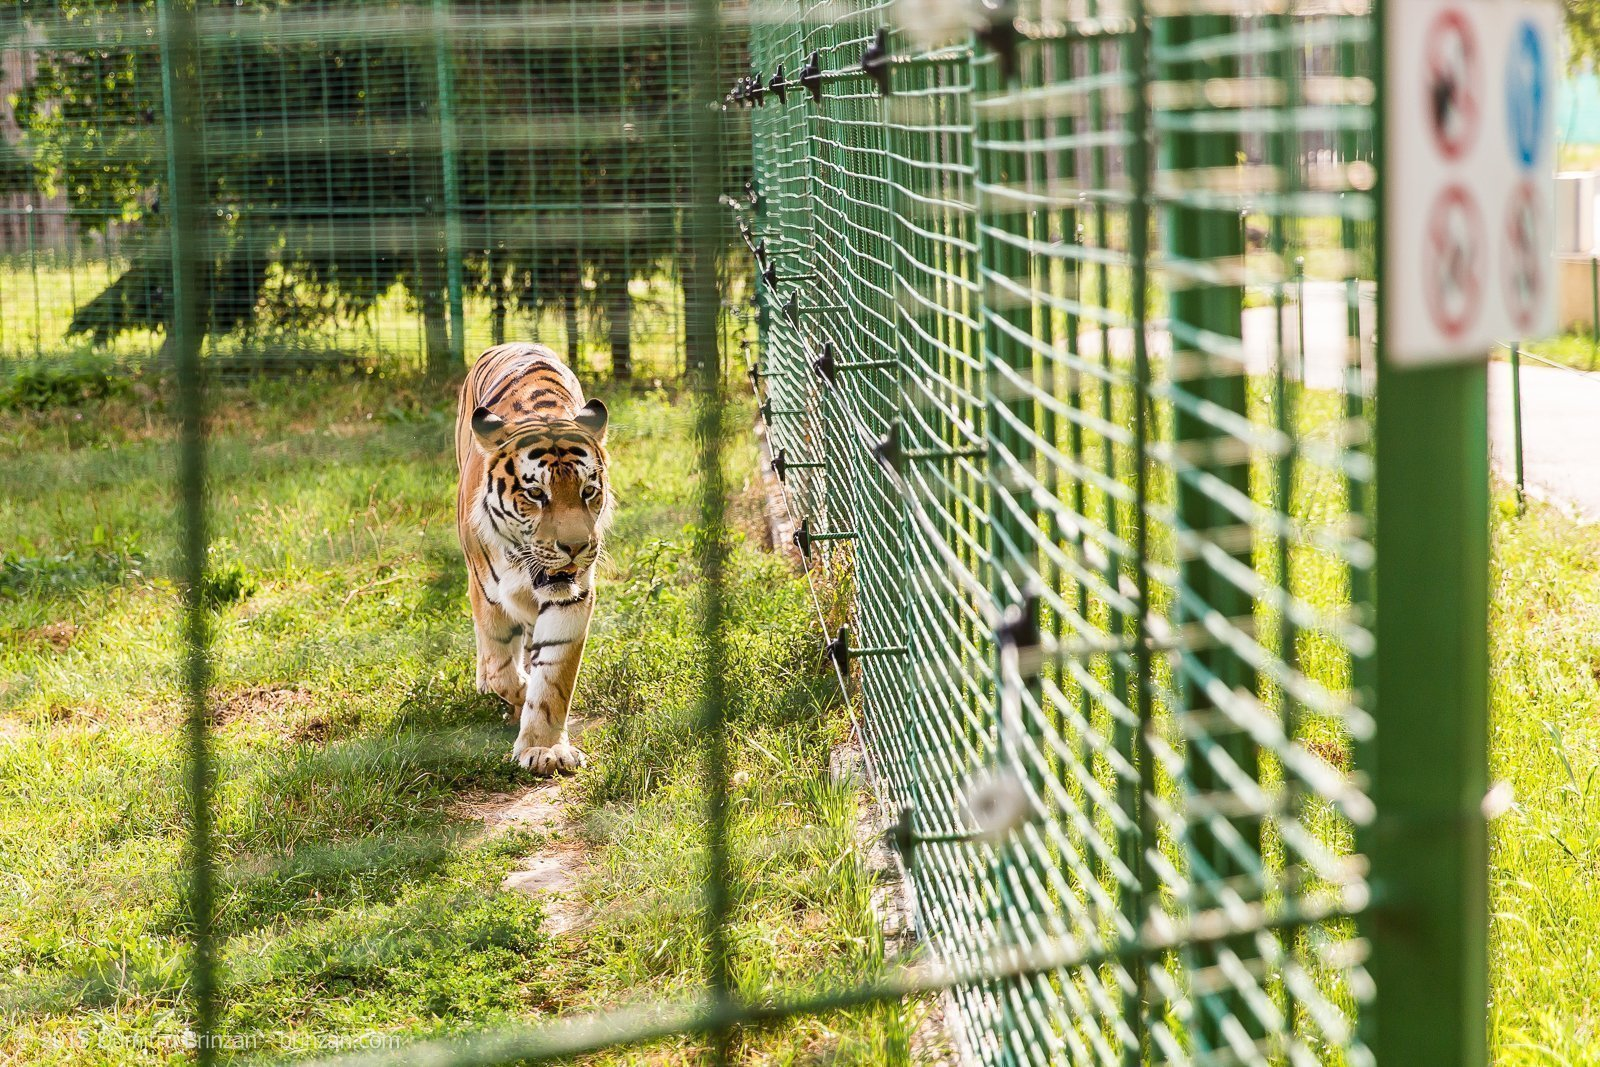 This agitated tiger was patrolling the perimeter of his enclosure.